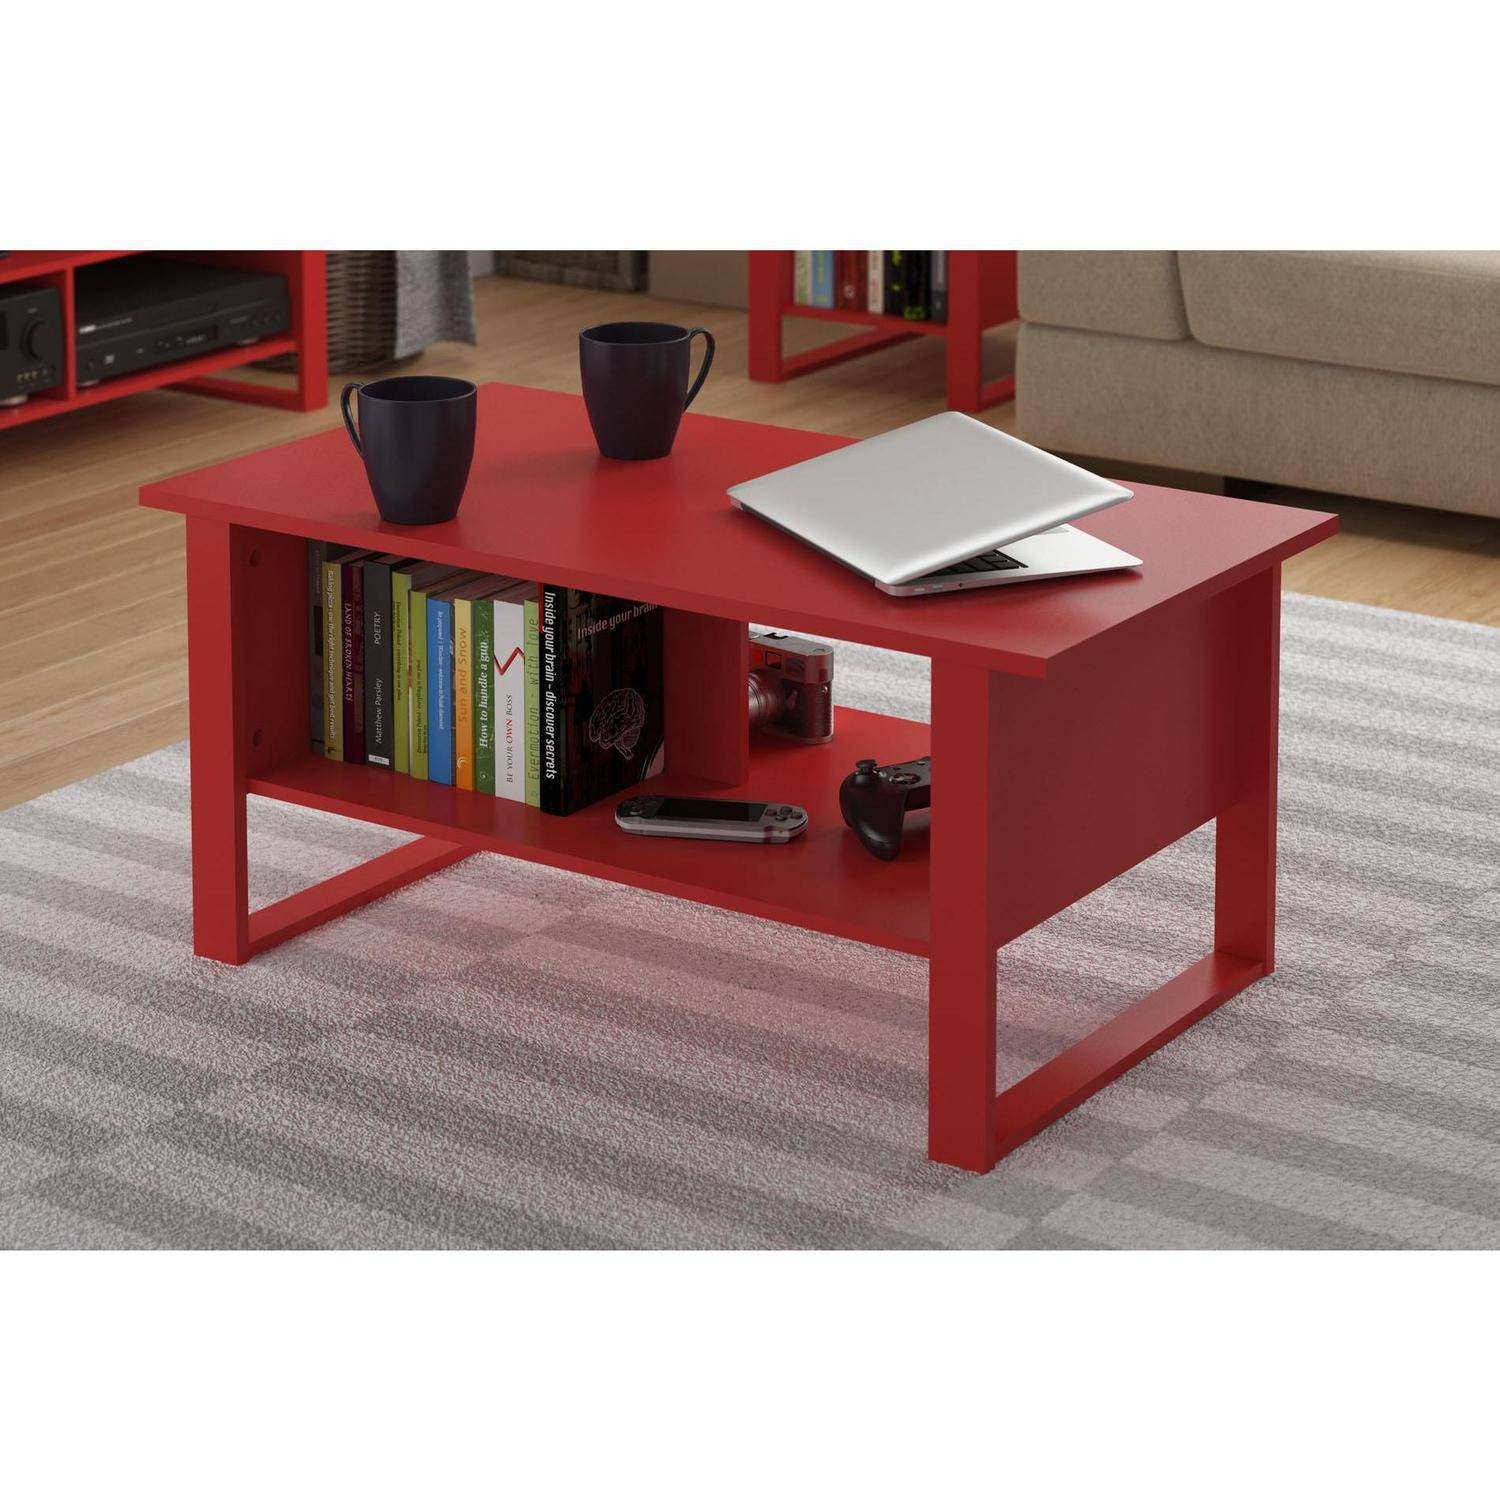 Ameriwood Home Carson Coffee Table, Espresso/silver - Walmart for Rustic Coffee Tables With Bottom Shelf (Image 3 of 30)